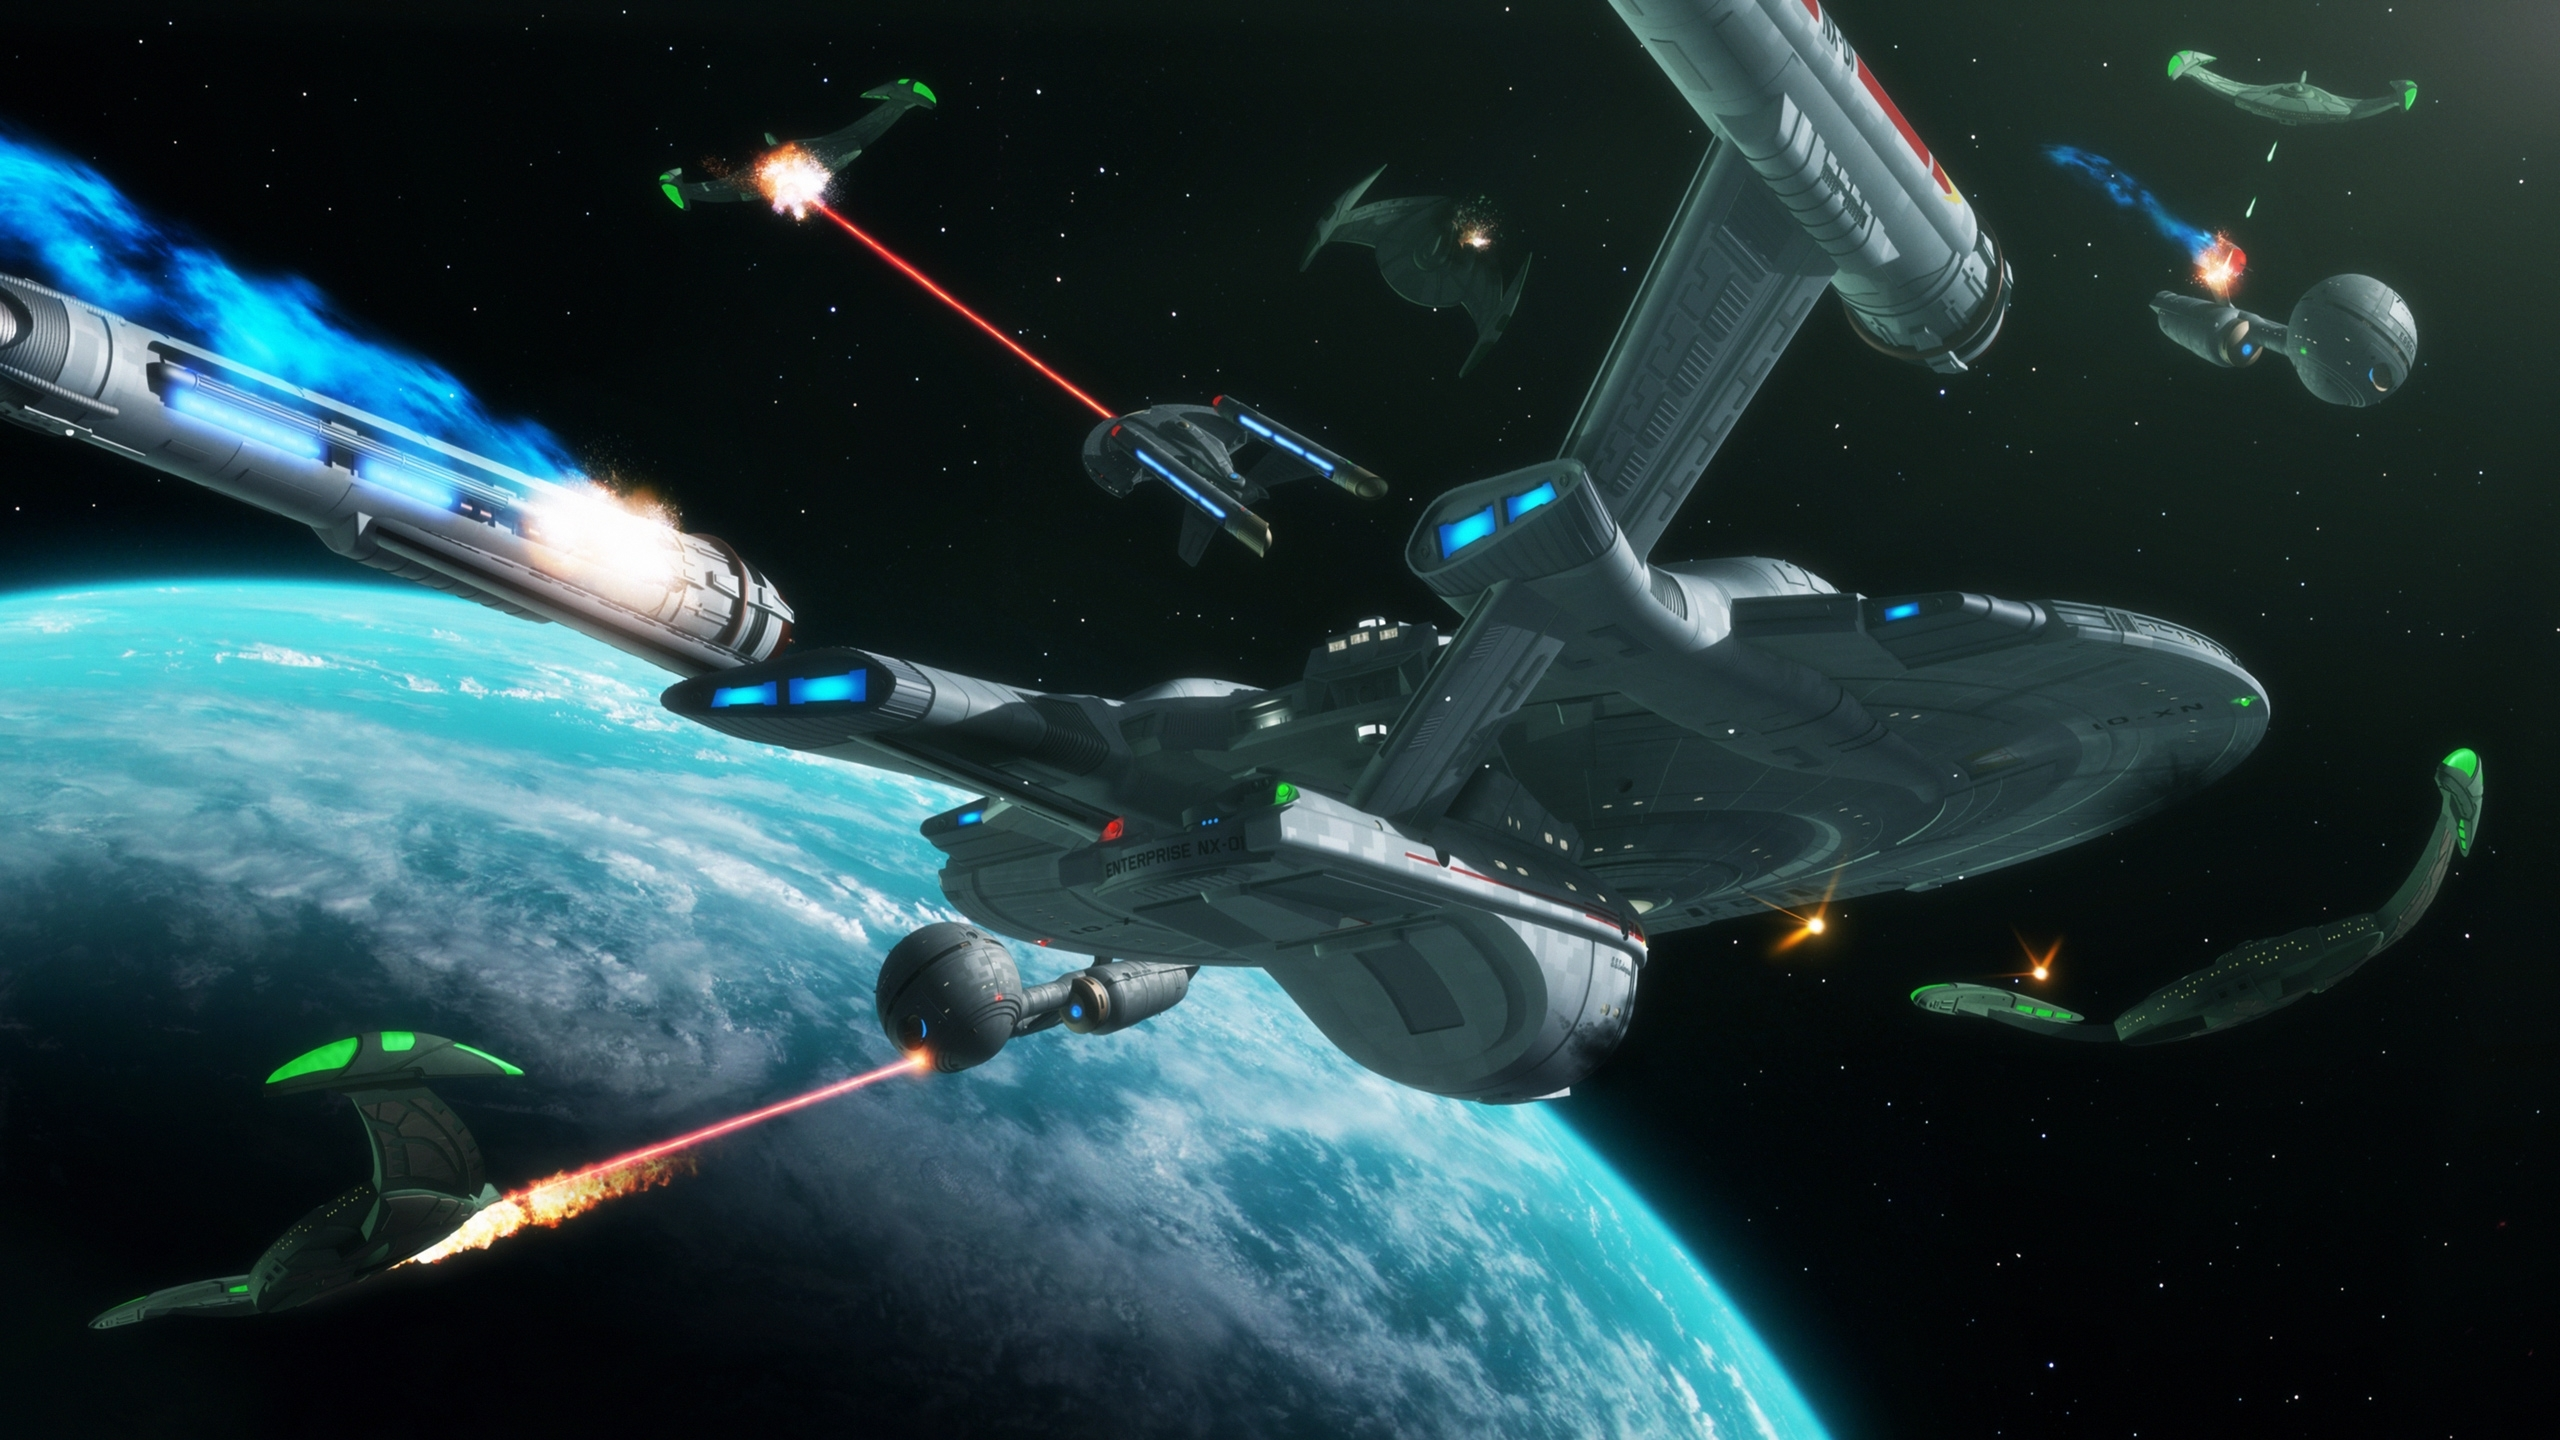 star trek the battle of cheron, free star trek computer desktop hd